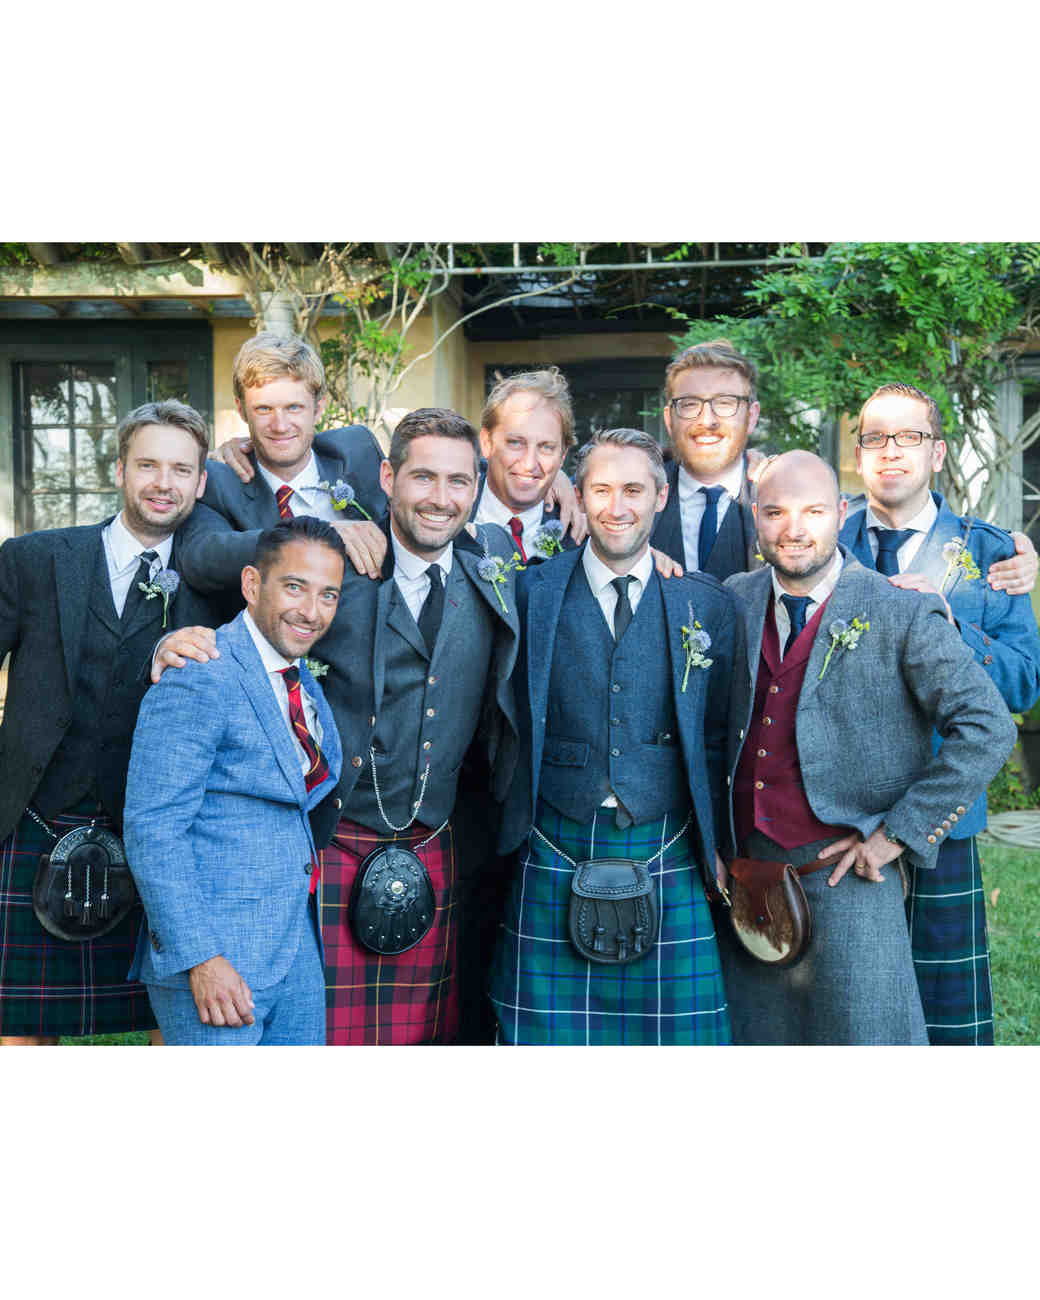 wedding groomsmen kilts